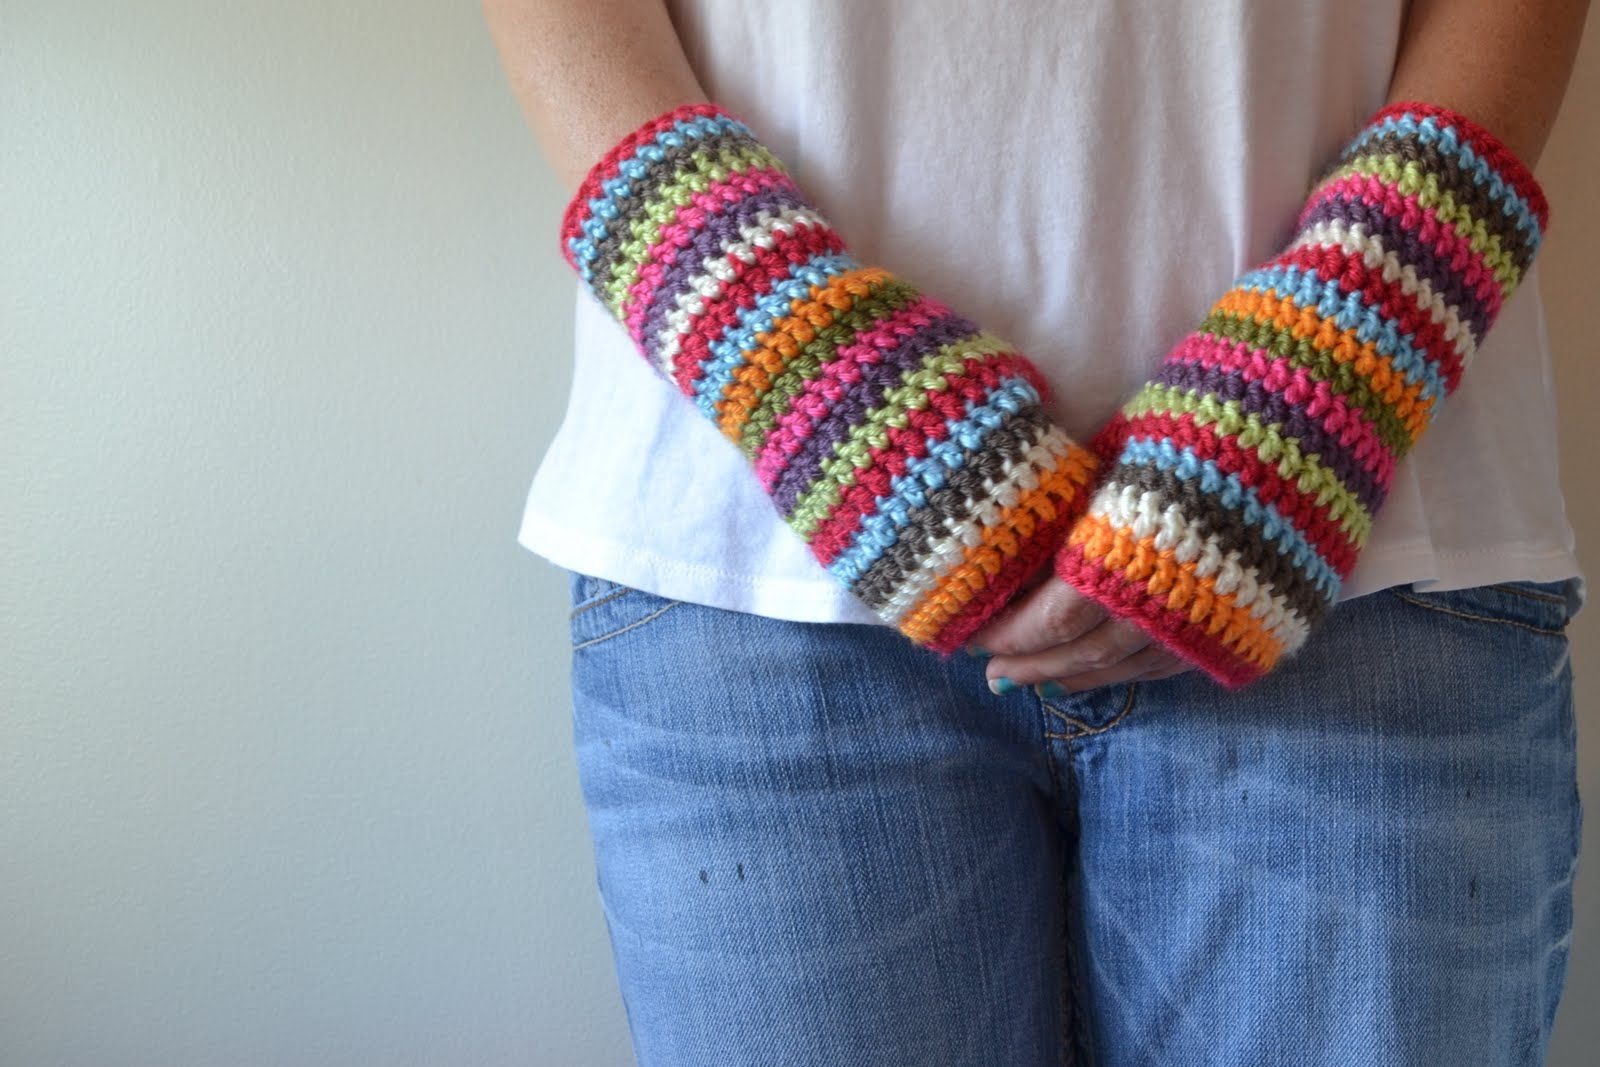 Crochet Patterns Gloves Fingerless : Crochet in Color: Colorful Stripey Fingerless Mitts